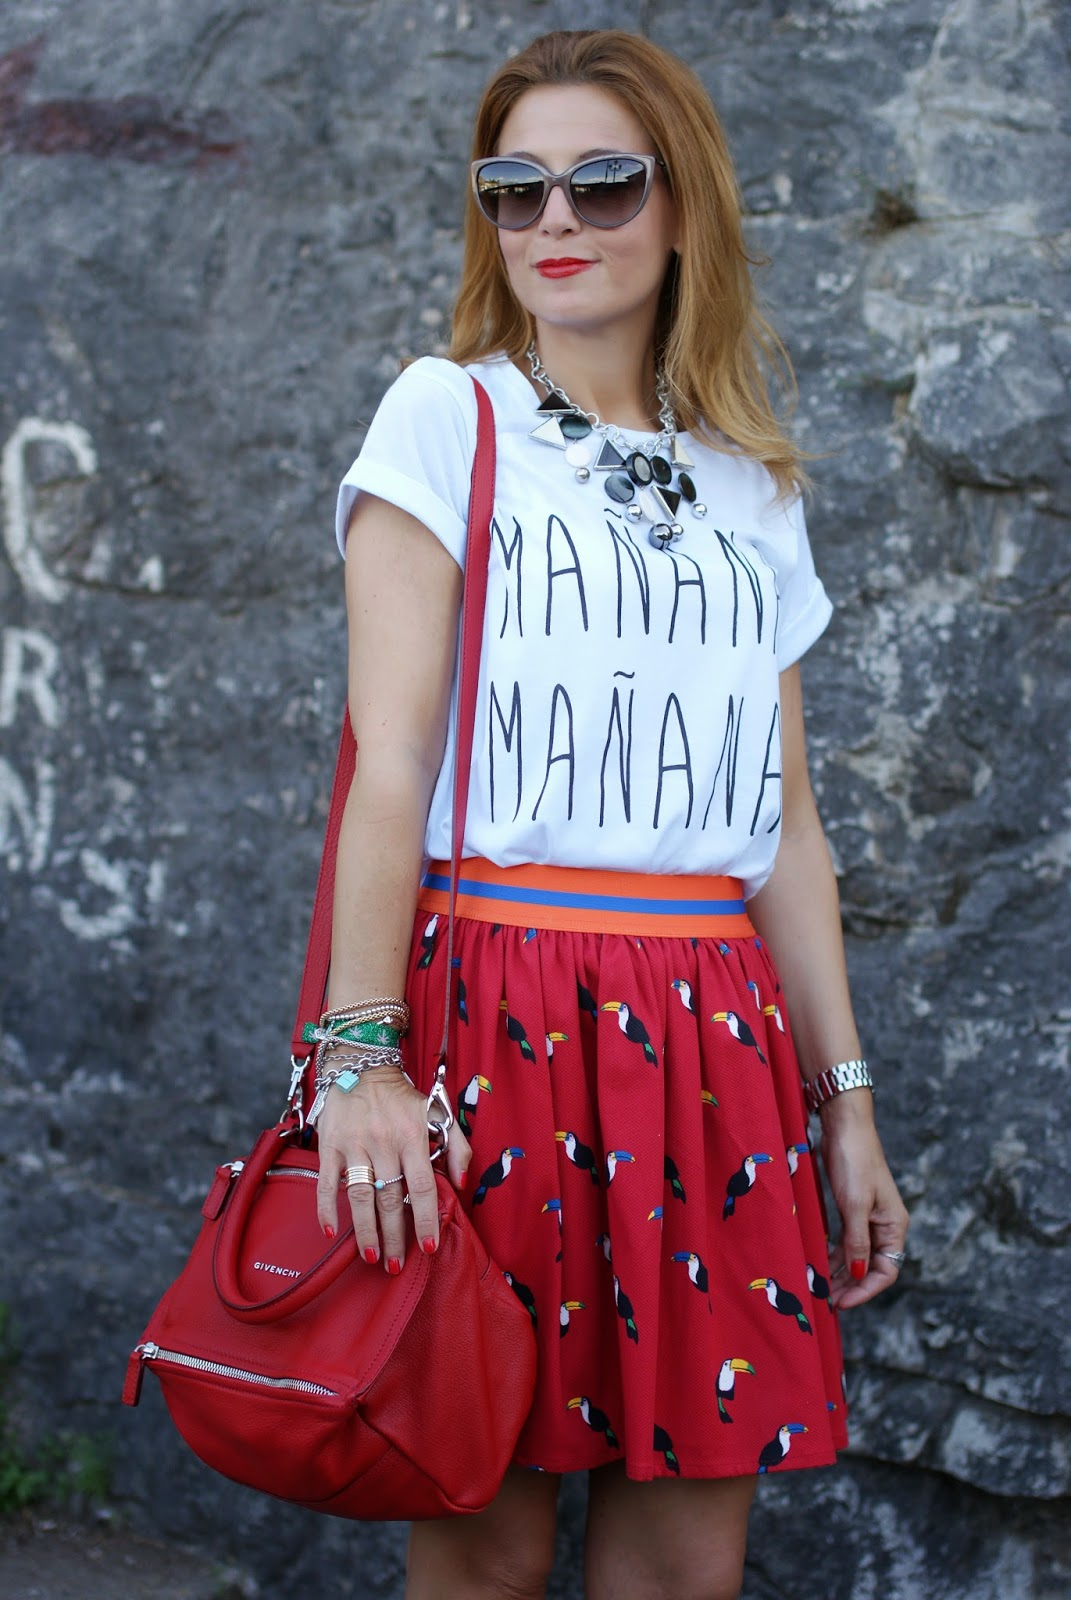 Vitti Ferria Contin necklace, manana t-shirt, Northland Vicolo skirt, Givenchy Pandora in red, Fashion and Cookies, fashion blogger